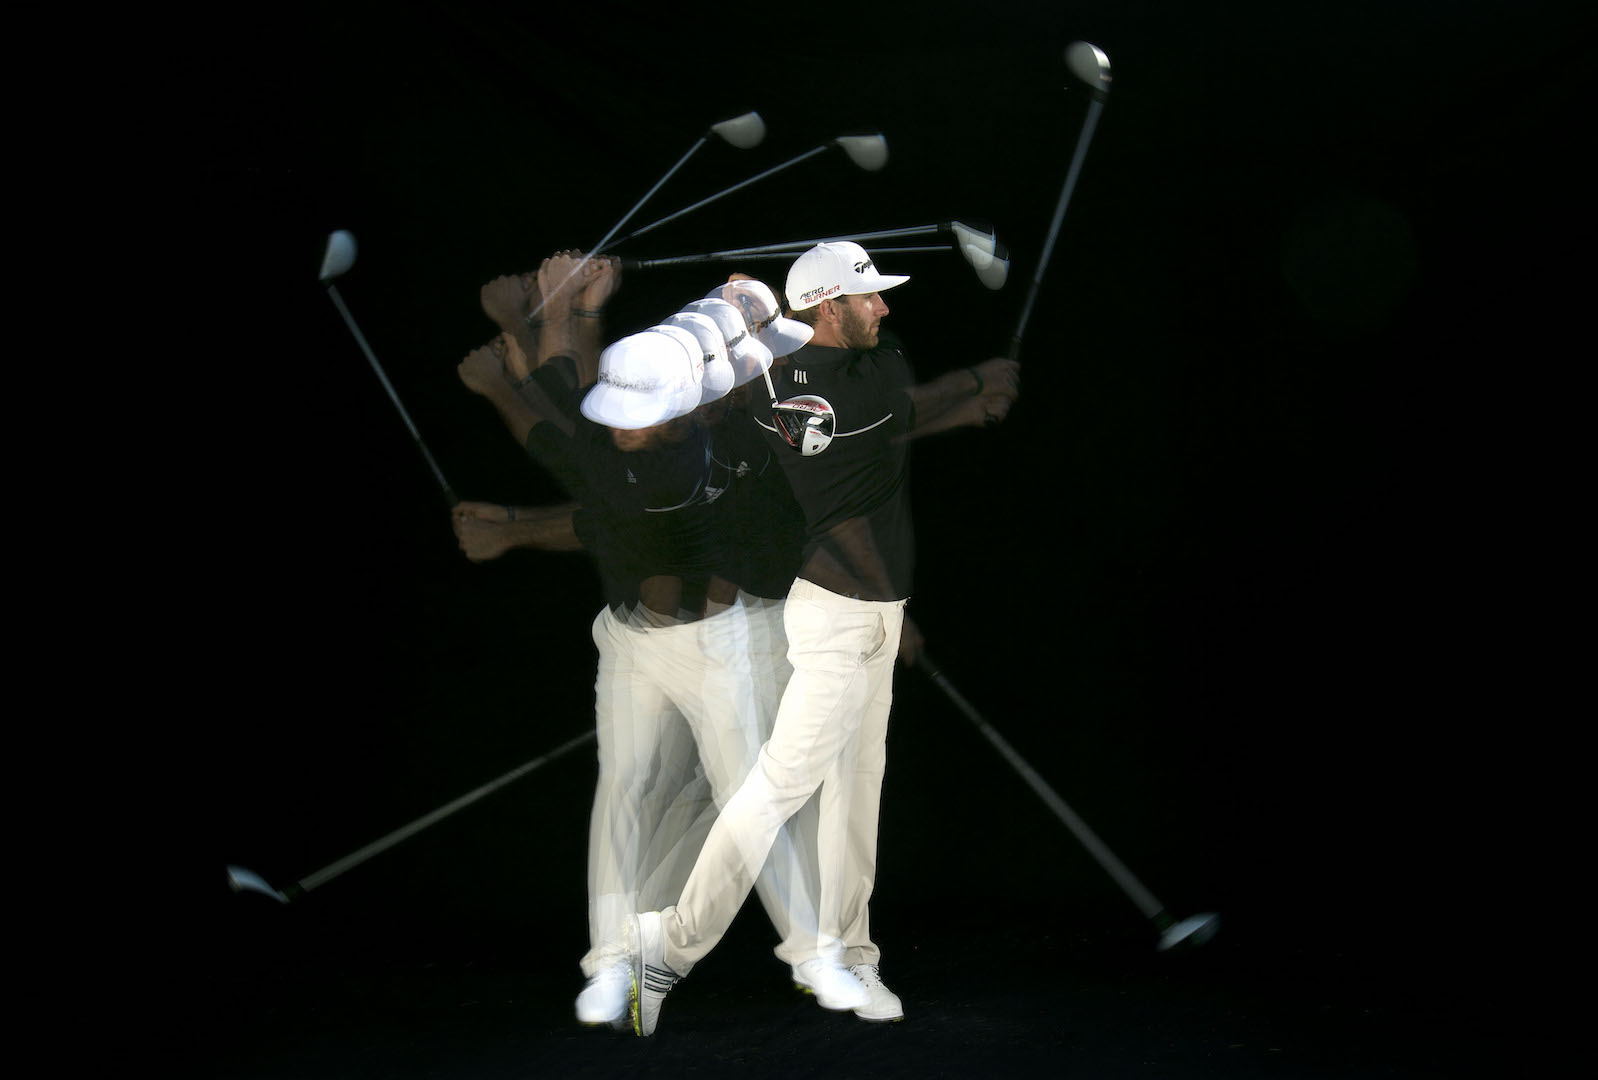 Golf chipping secrets: Chest to target